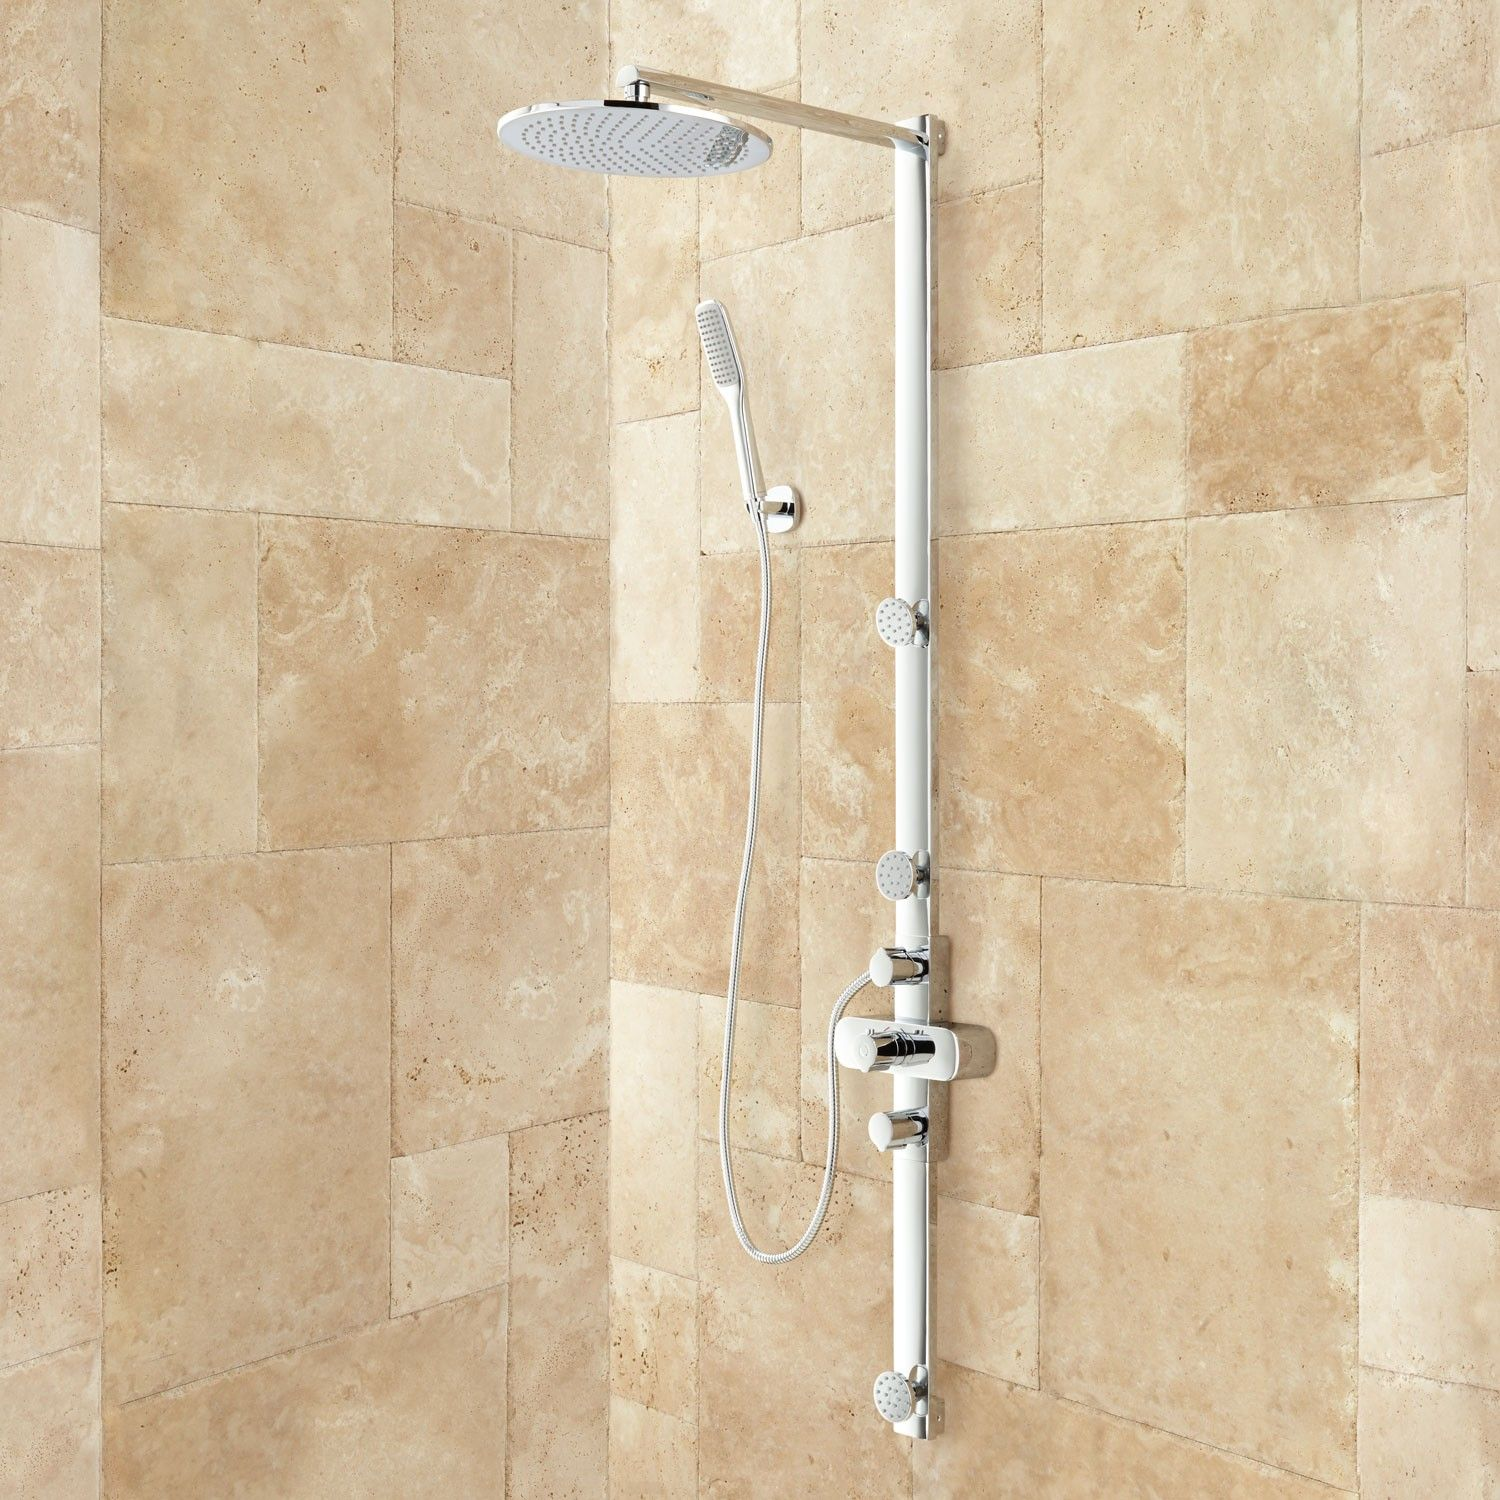 Correia Exposed Pipe Shower System With Rainfall Shower Head U0026 Hand Shower